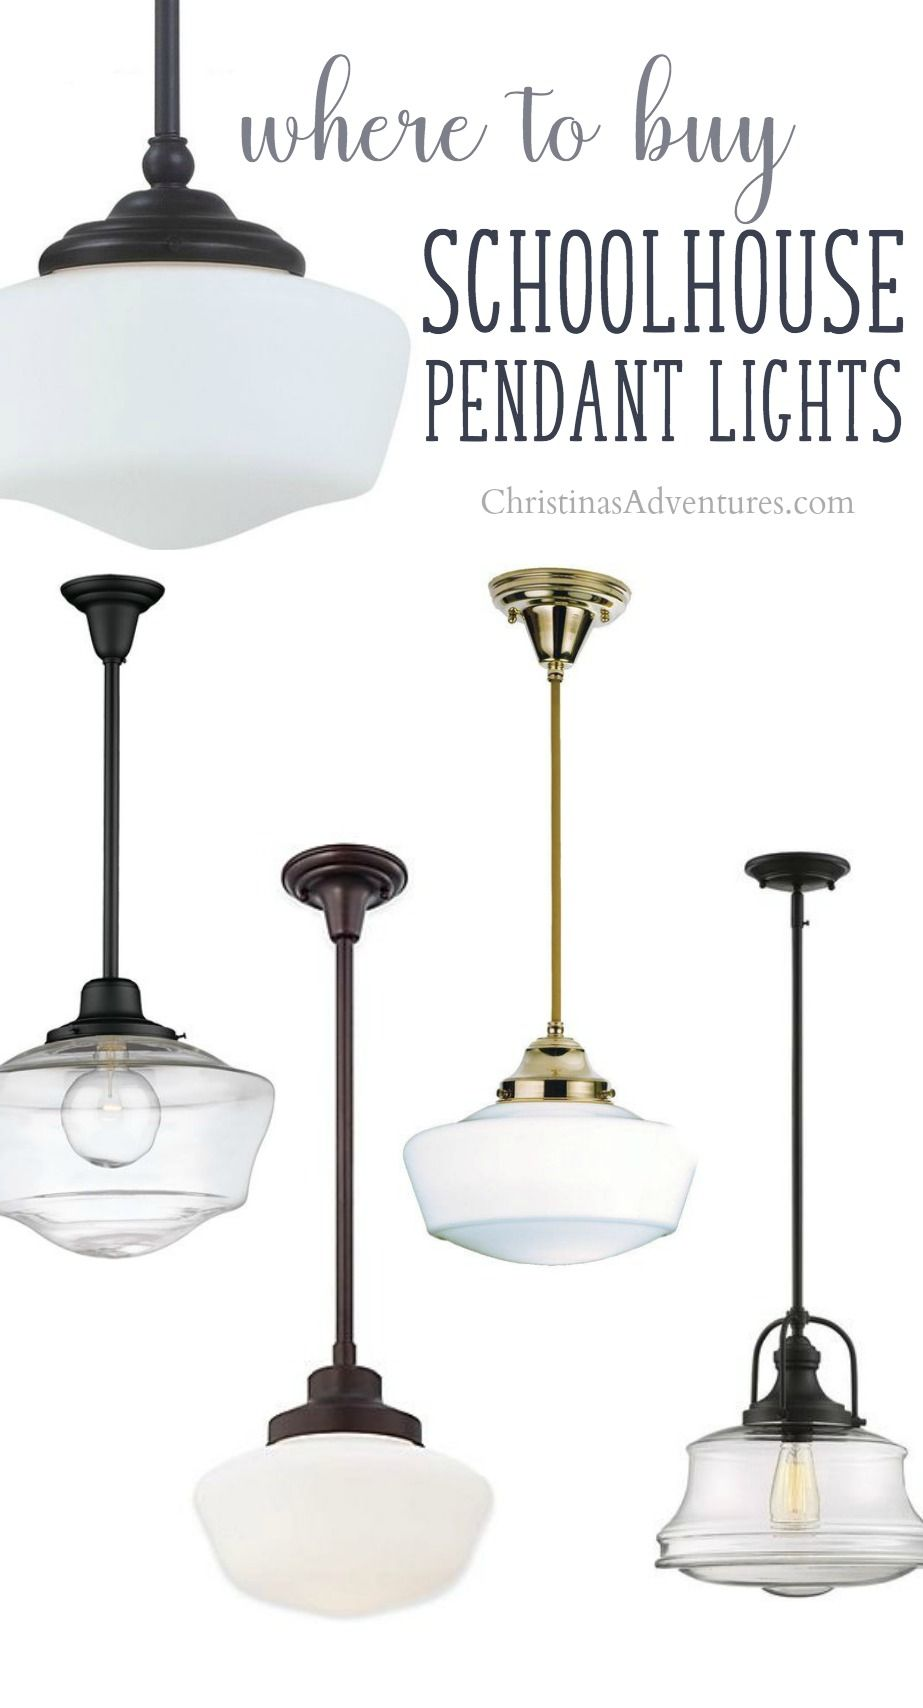 Genial The Best Sources For Schoolhouse Pendant Lights   For All Styles And  Budgets! This Post Also Shows How To Add Them To Your Home Decor For A  Timeless Look